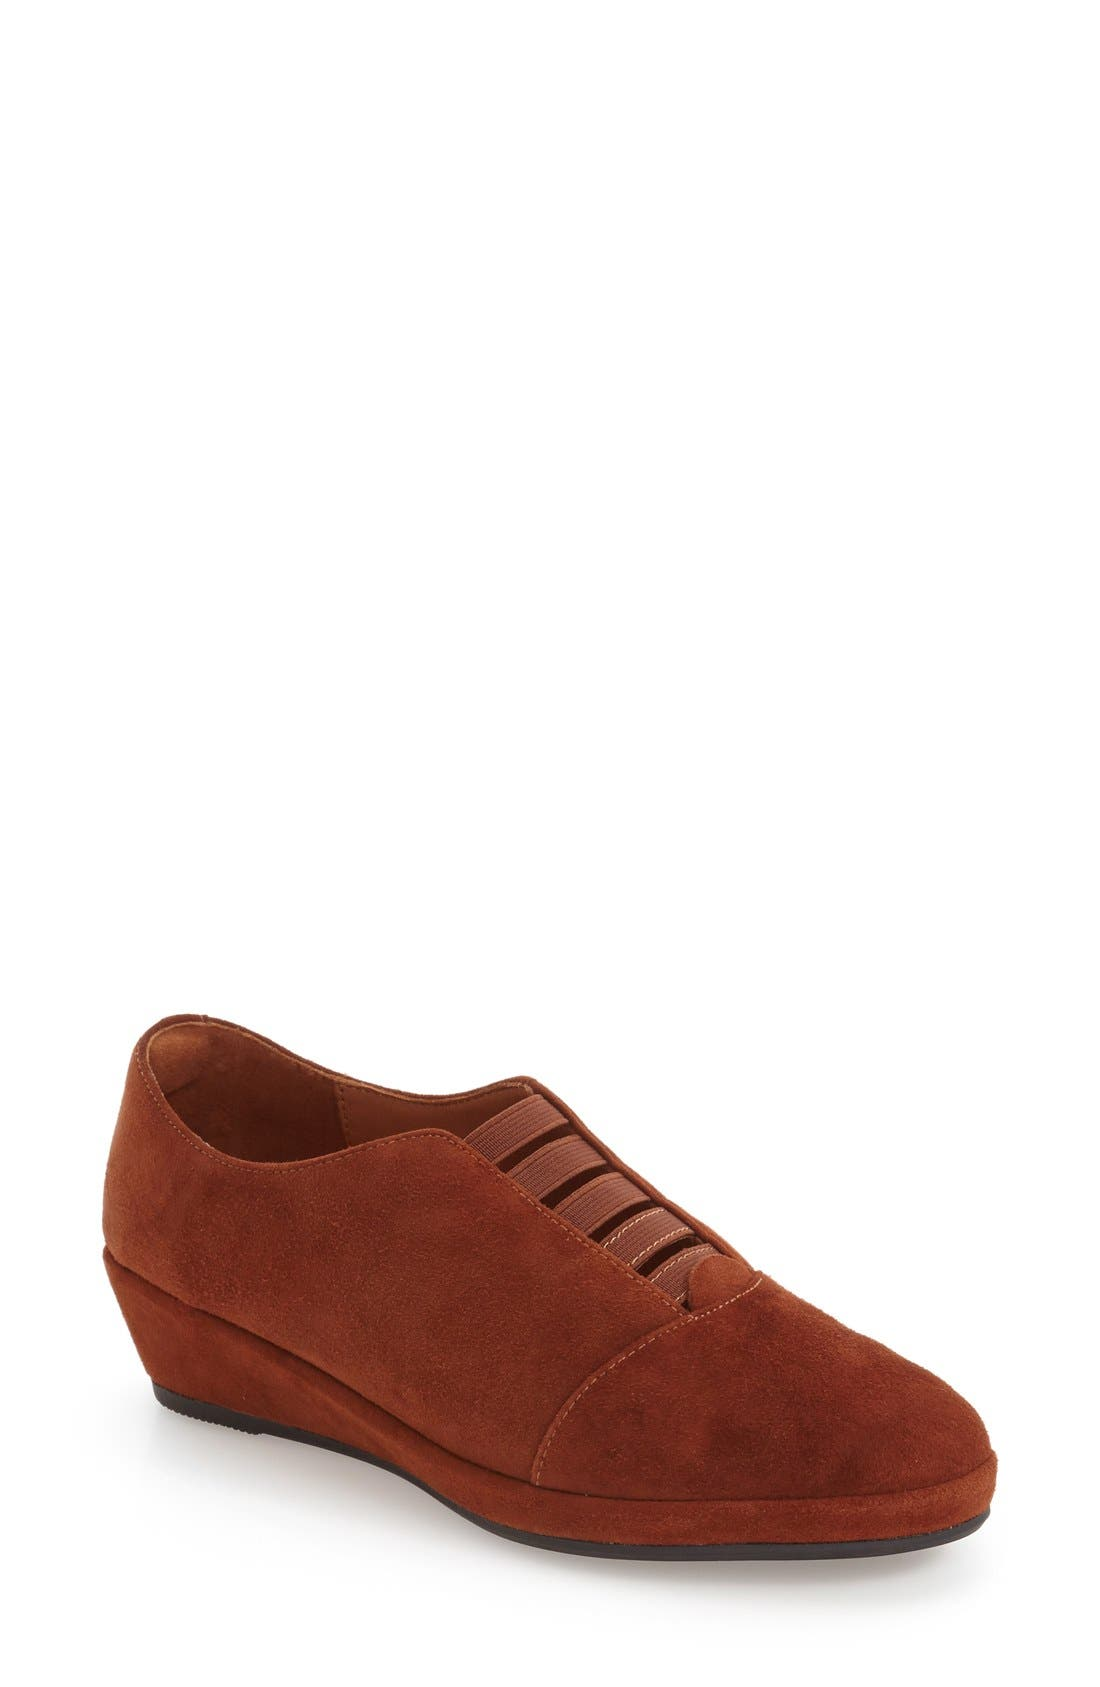 'Beziers' Slip-On,                         Main,                         color, BRANDY SUEDE LEATHER